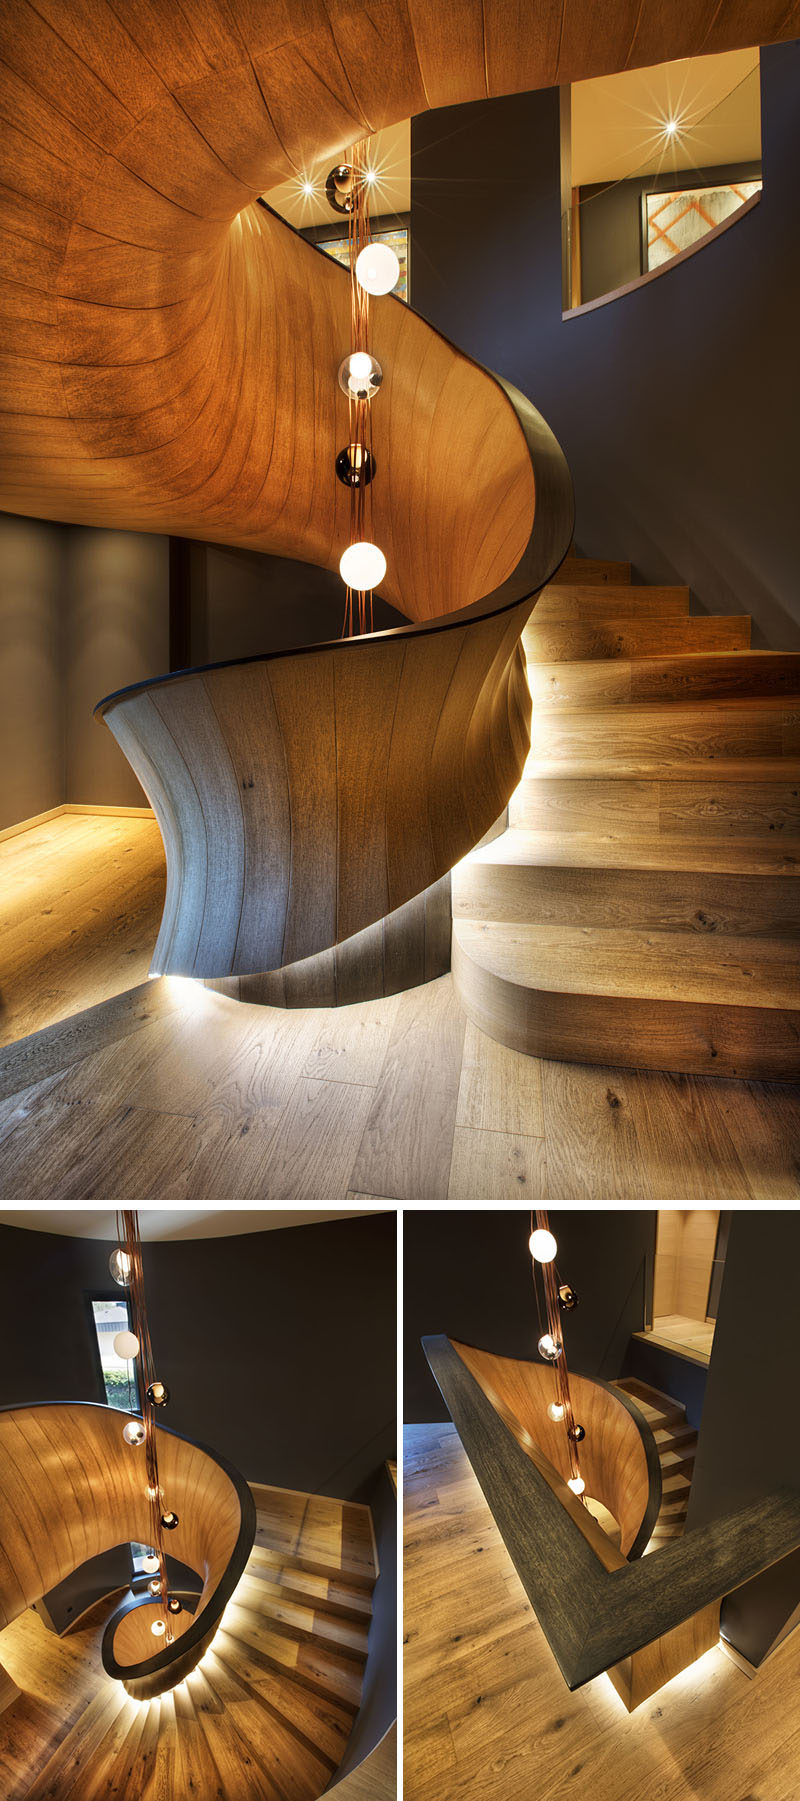 A sculptural oak staircase has been created to link the three levels of this modern house. The wood stairs have a natural oiled finish, which adds warmth to the interior, while the handrail has been varnished in black. #ModernStairs #SculpturalStairs #SpiralStaircase #ModernWoodStairs